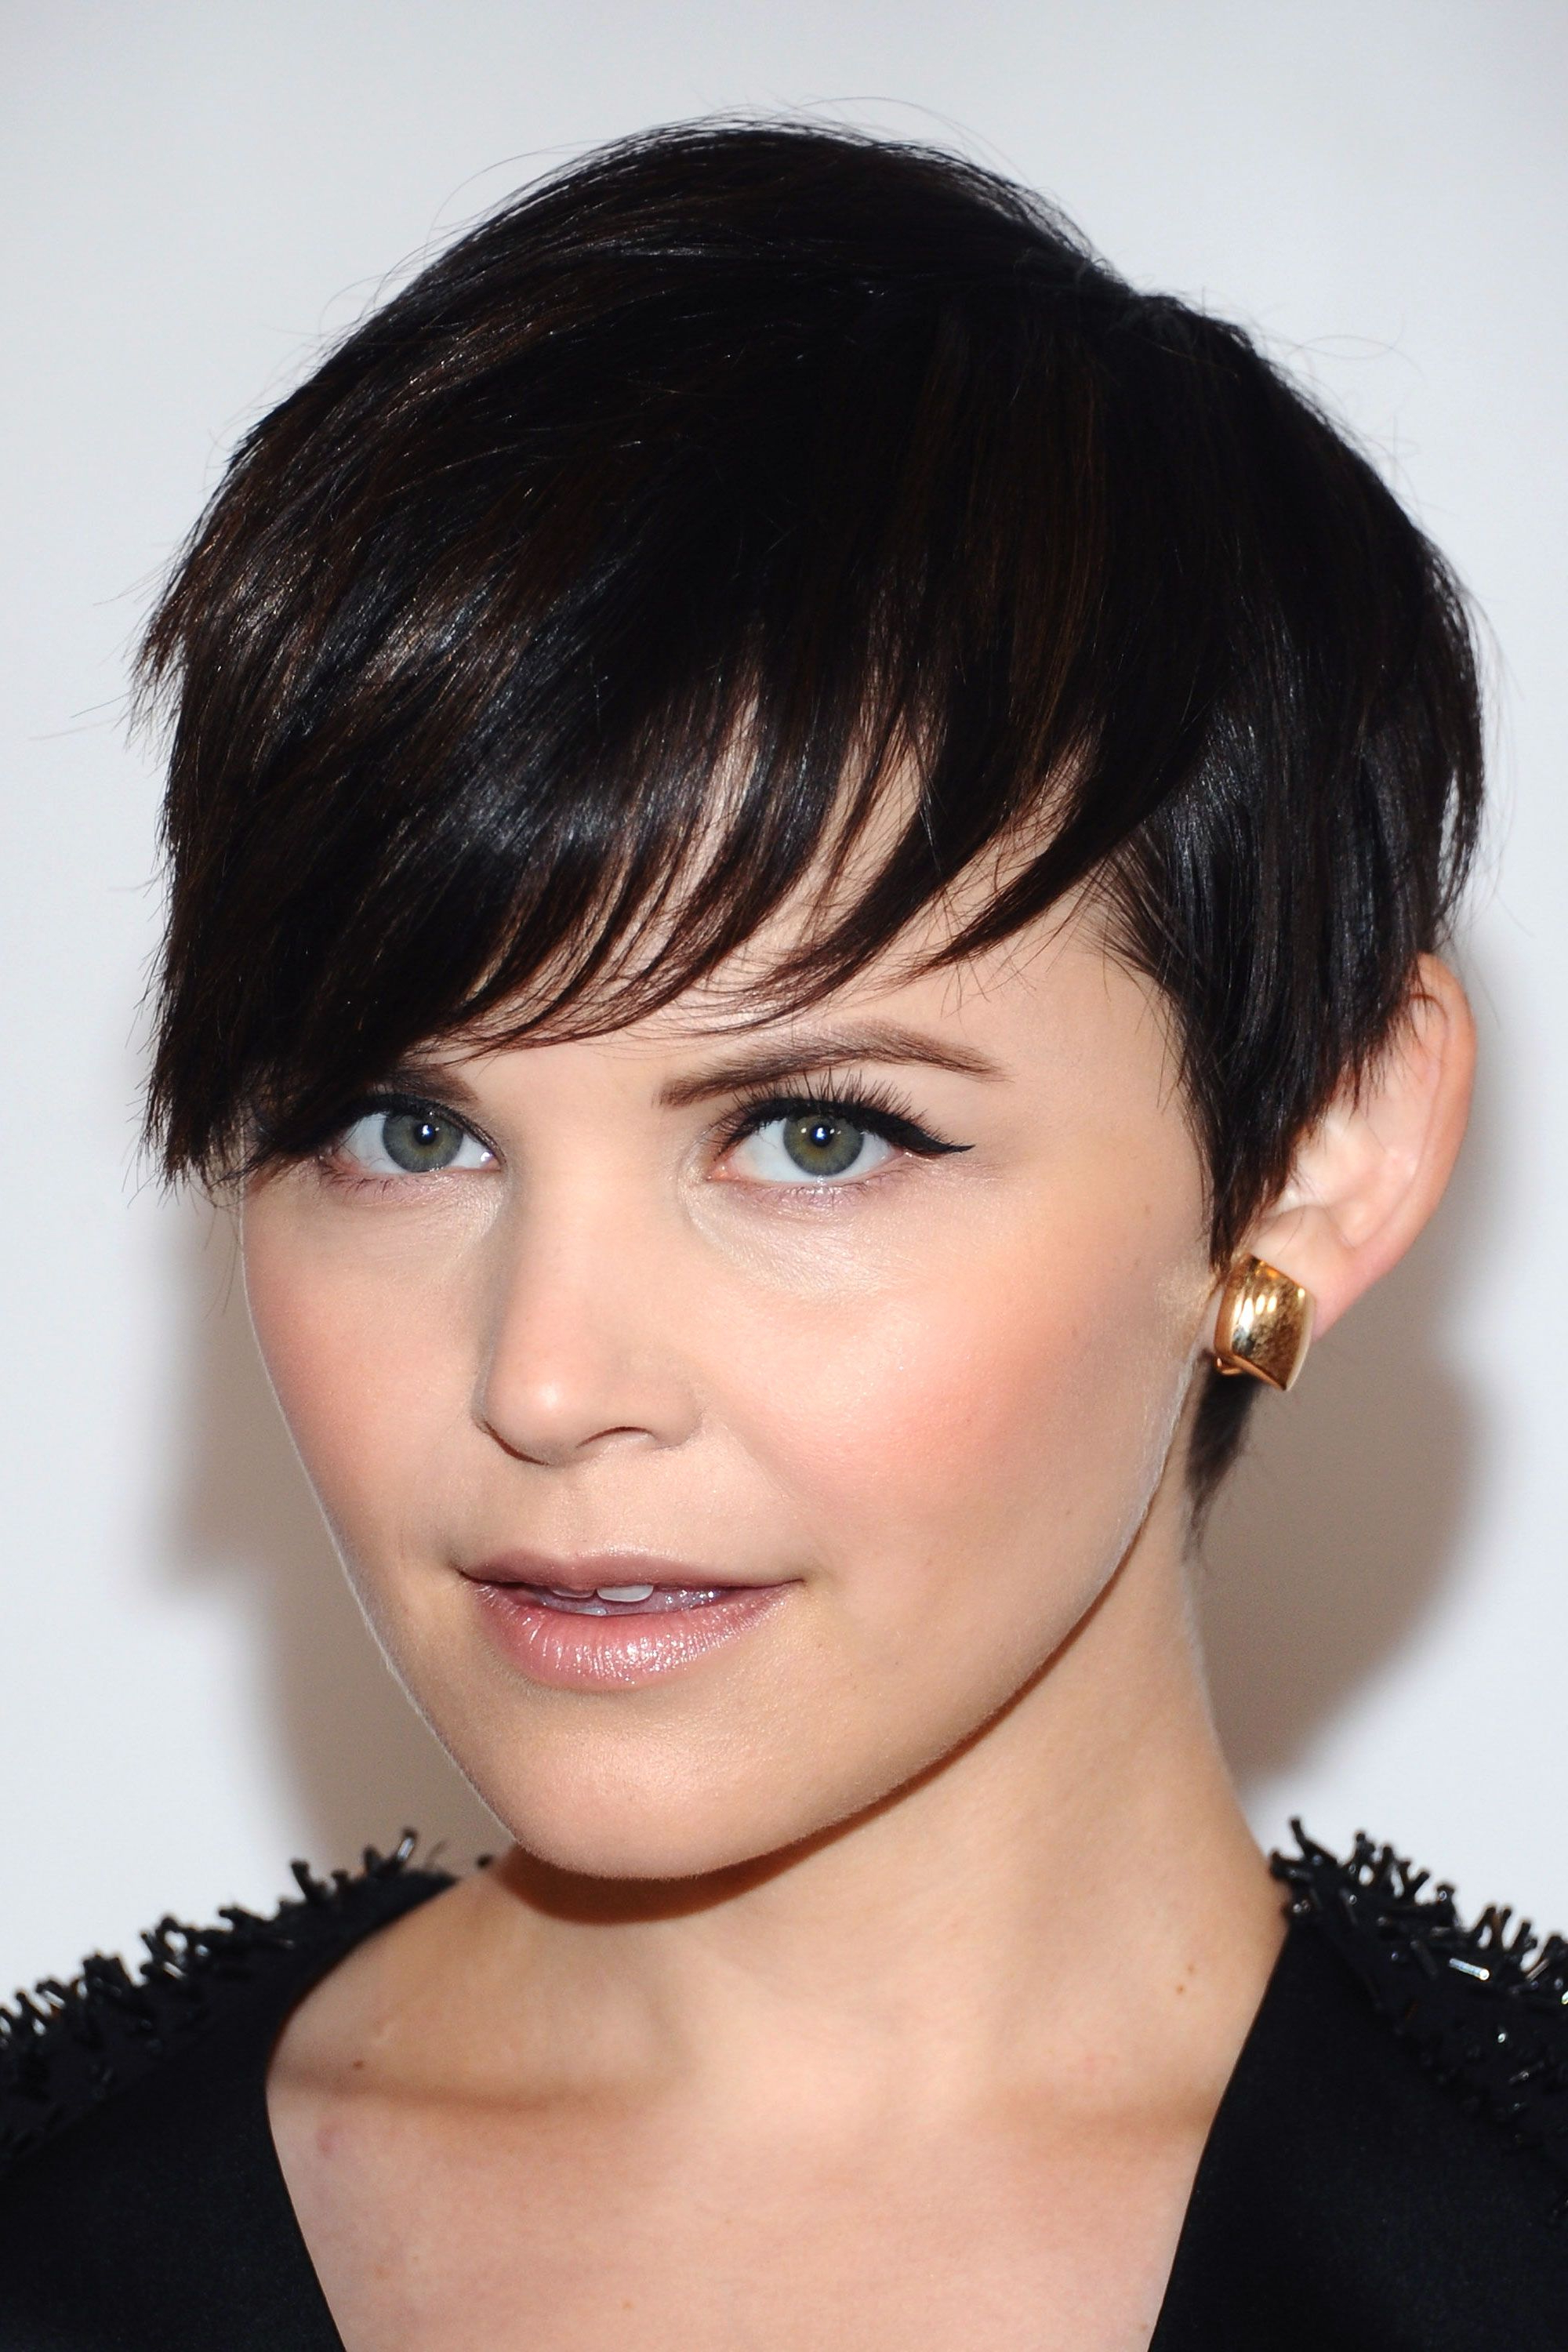 60+ Pixie Cuts We Love For 2019 – Short Pixie Hairstyles Inside Pixie Haircuts With Tight Curls (View 20 of 20)